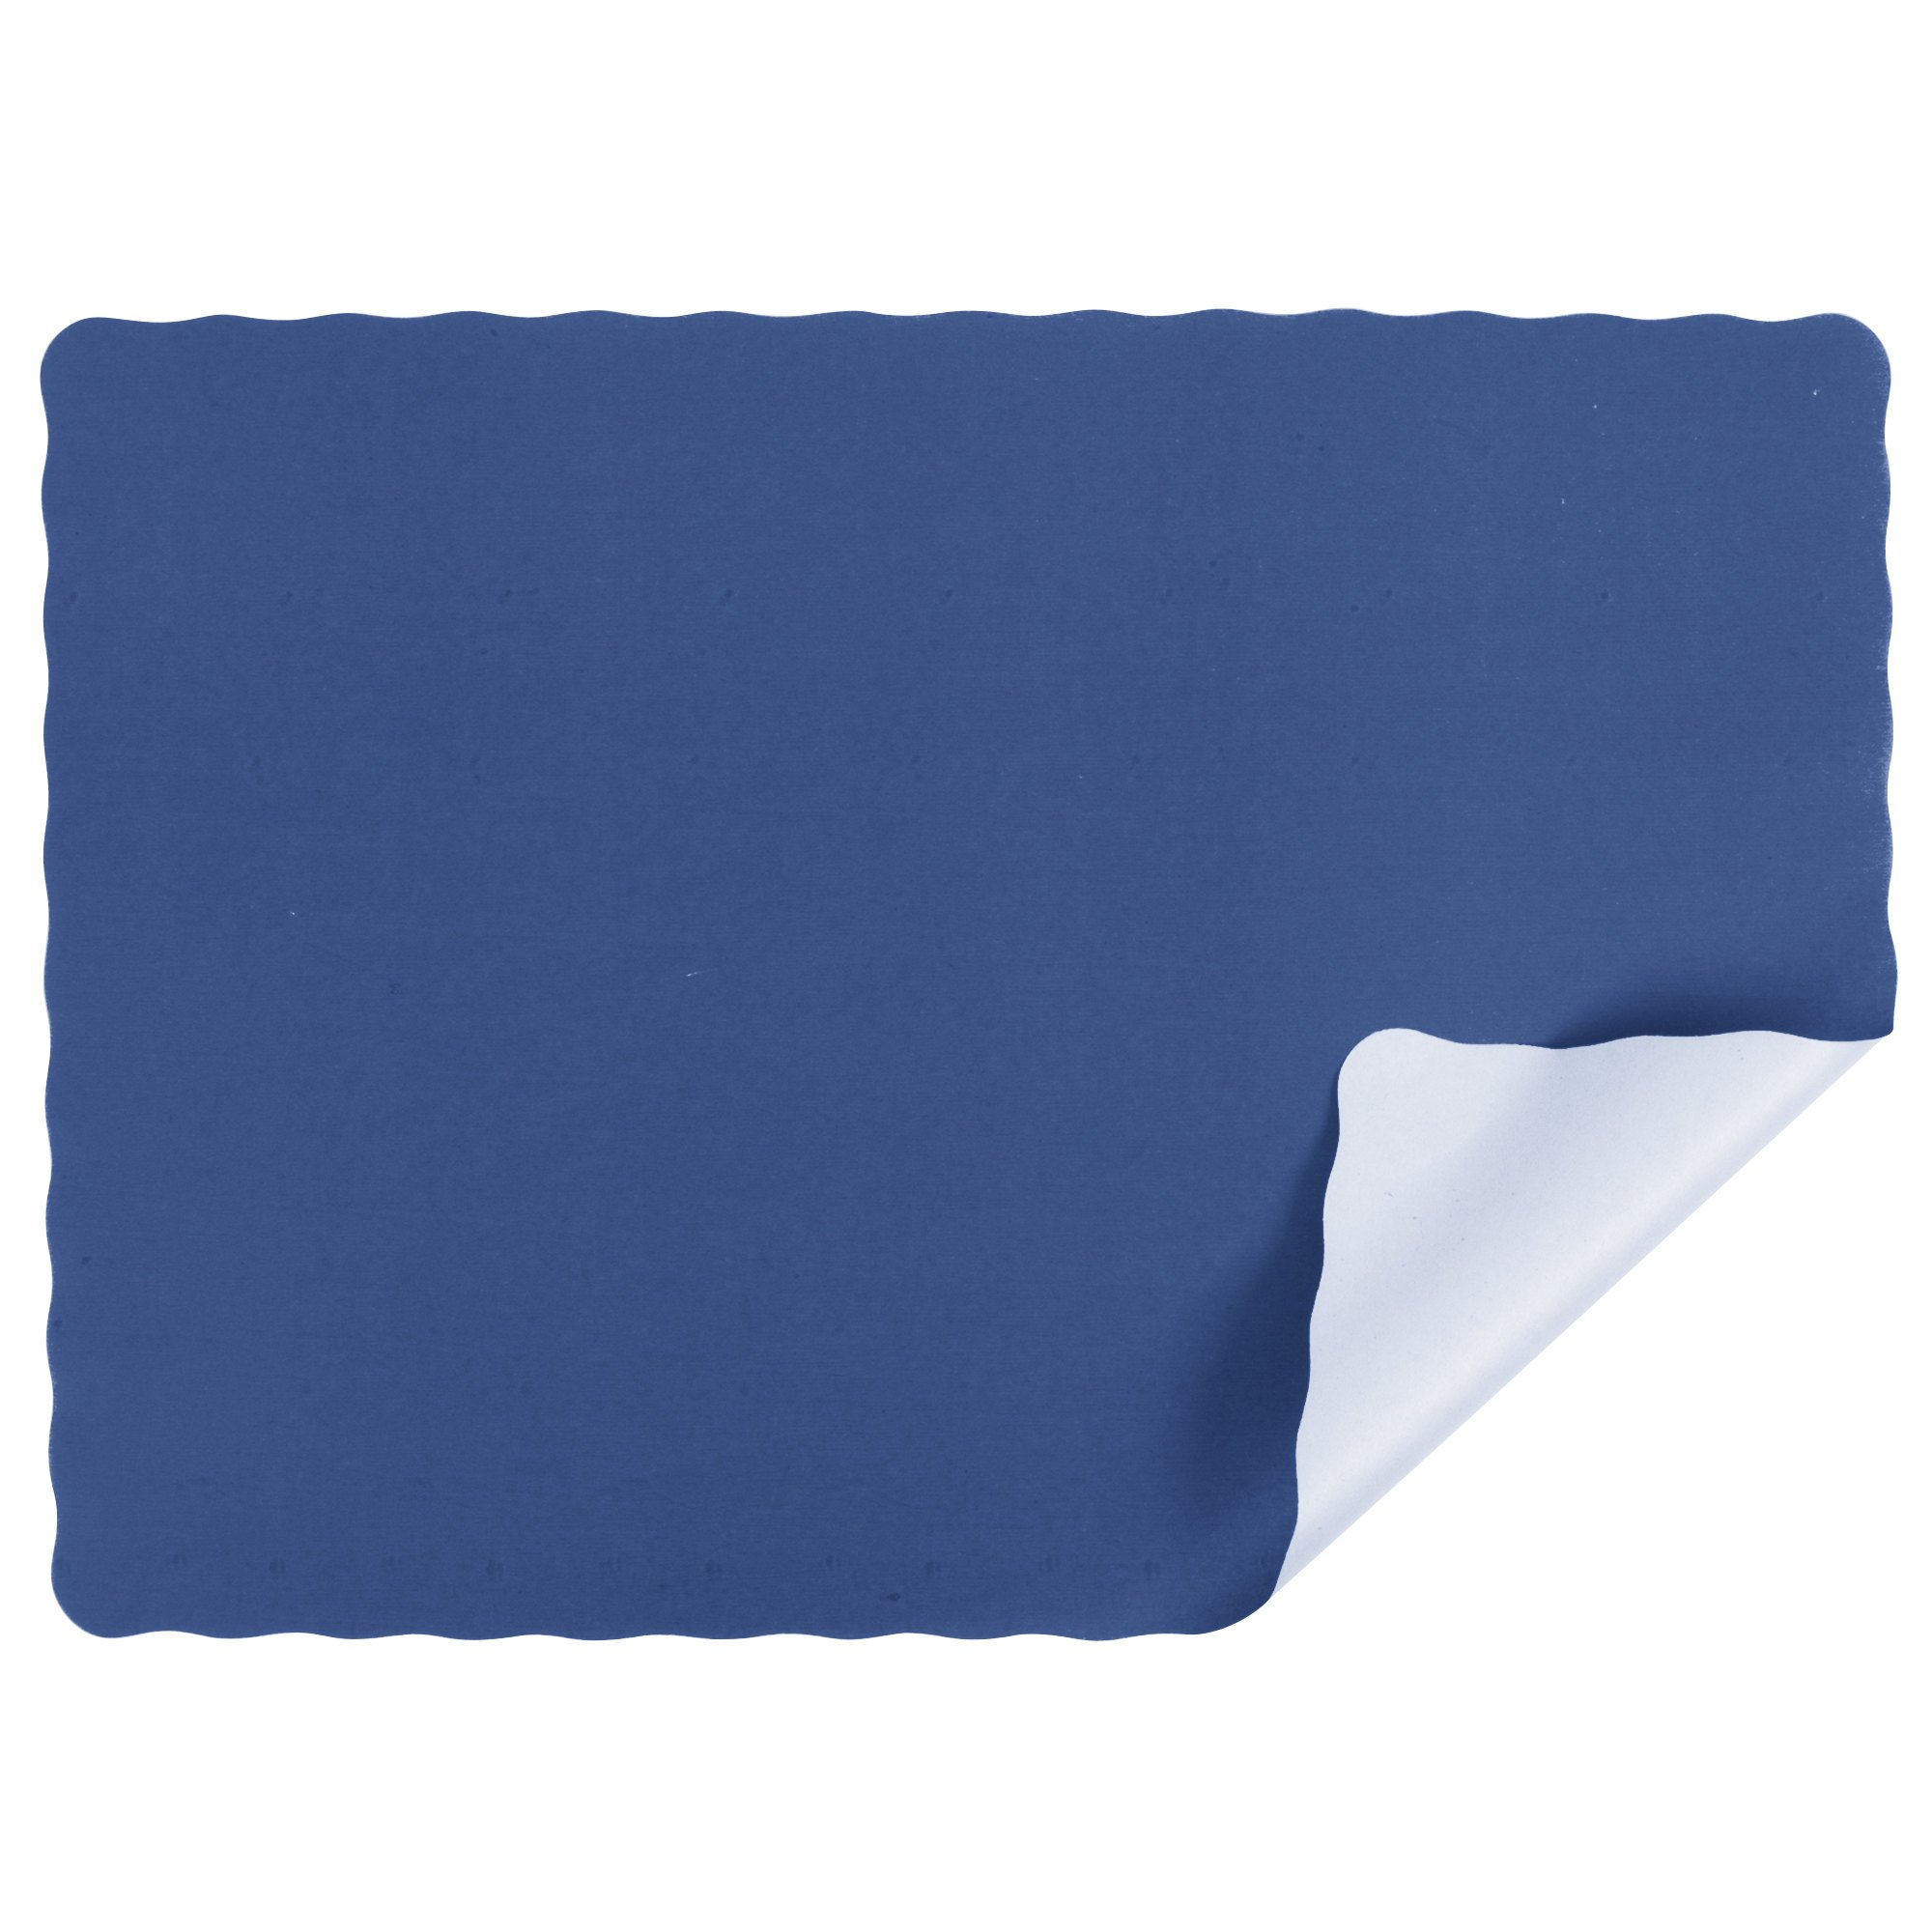 Navy Blue Colored Paper Placemat with Scalloped Edge - 1000/Case Size: 10'' x 14''